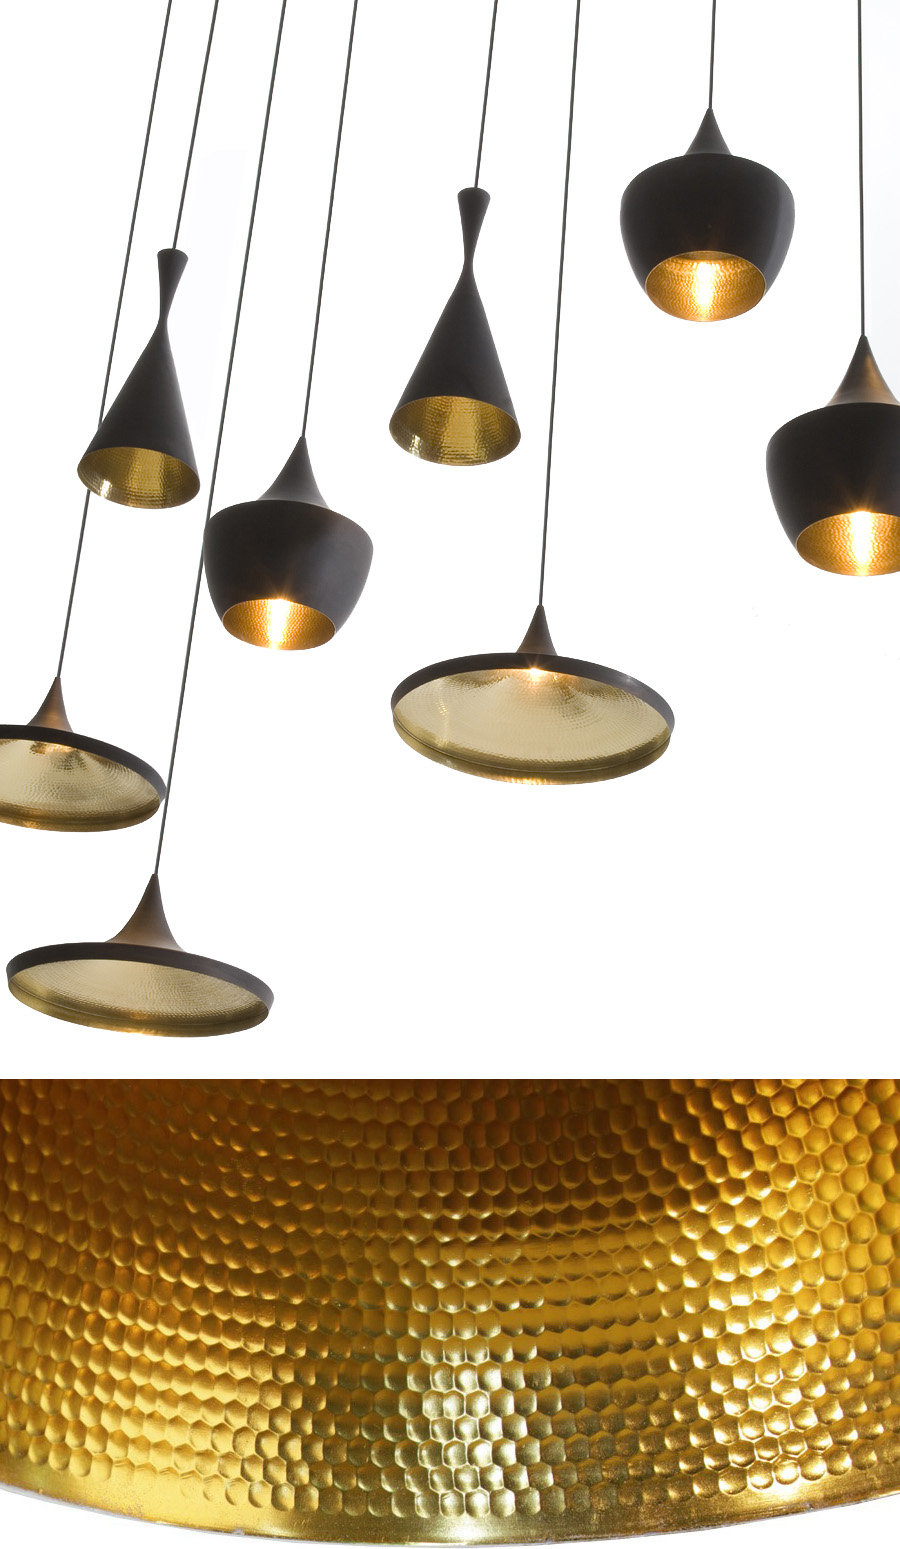 tom dixon style lighting. Tom Dixon Beat Tall Lights Click To View Additional Images Style Lighting R